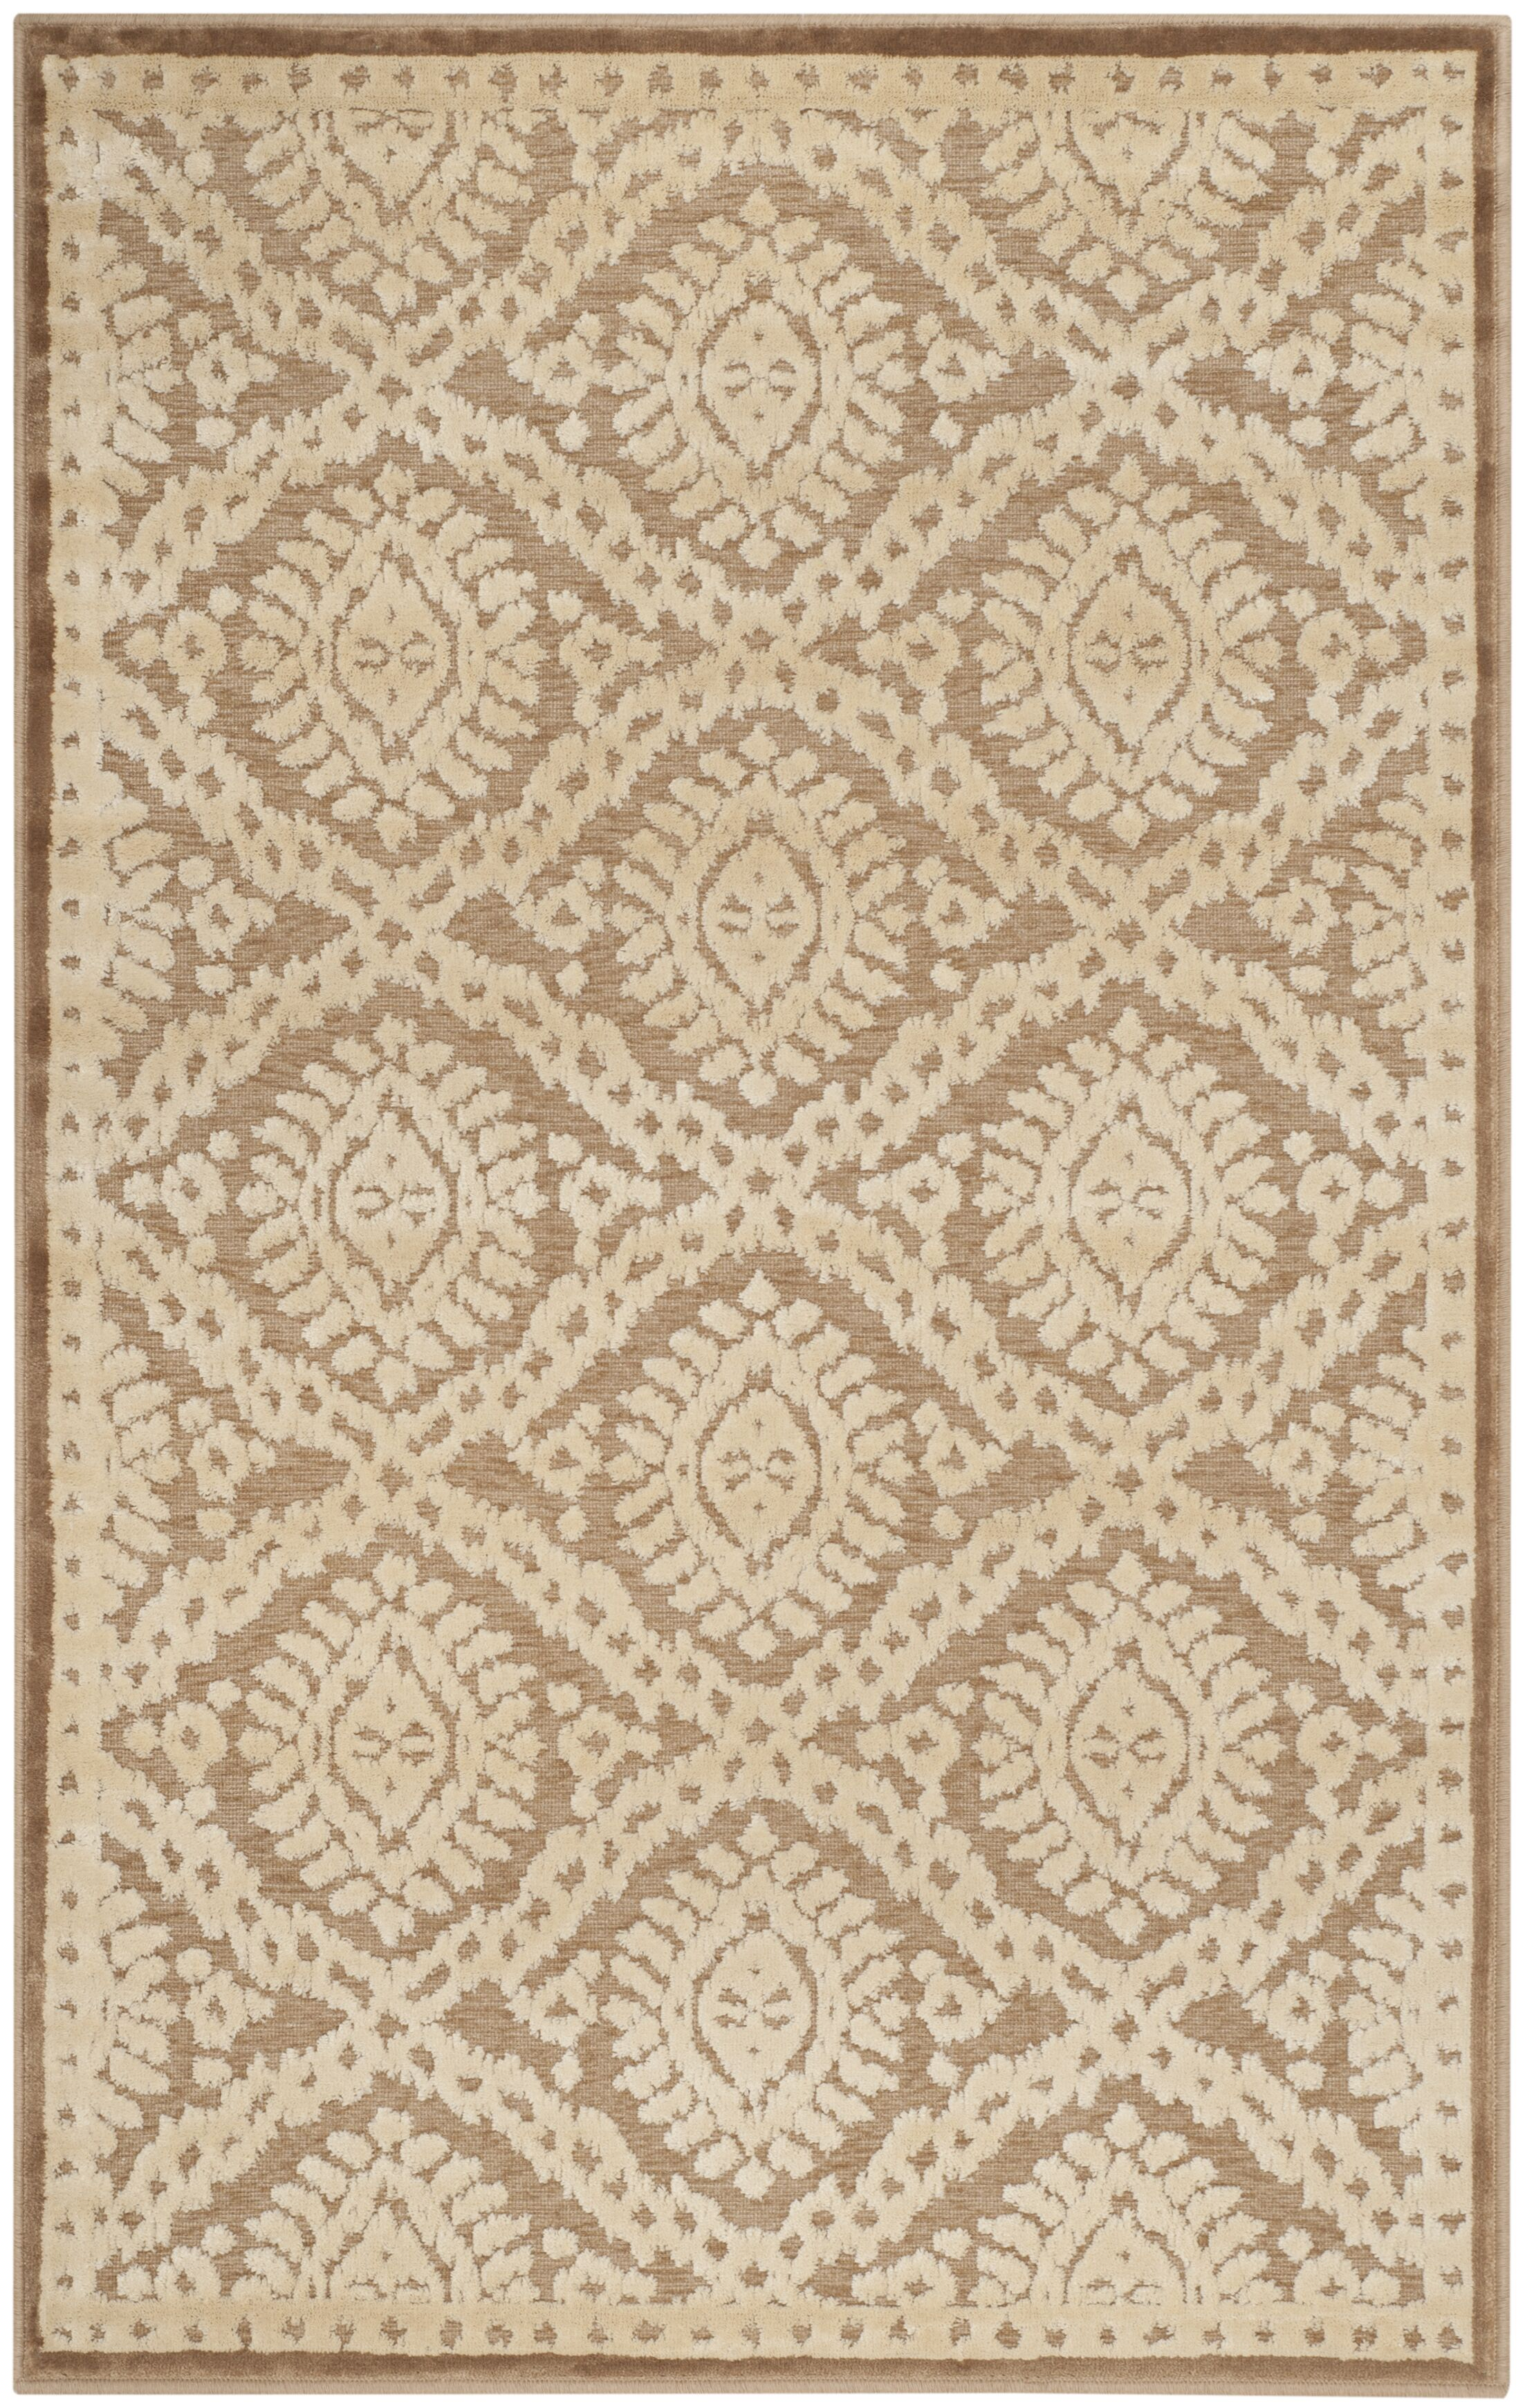 Hand-Loomed Taupe/Beige Area Rug Rug Size: Rectangle 5'3